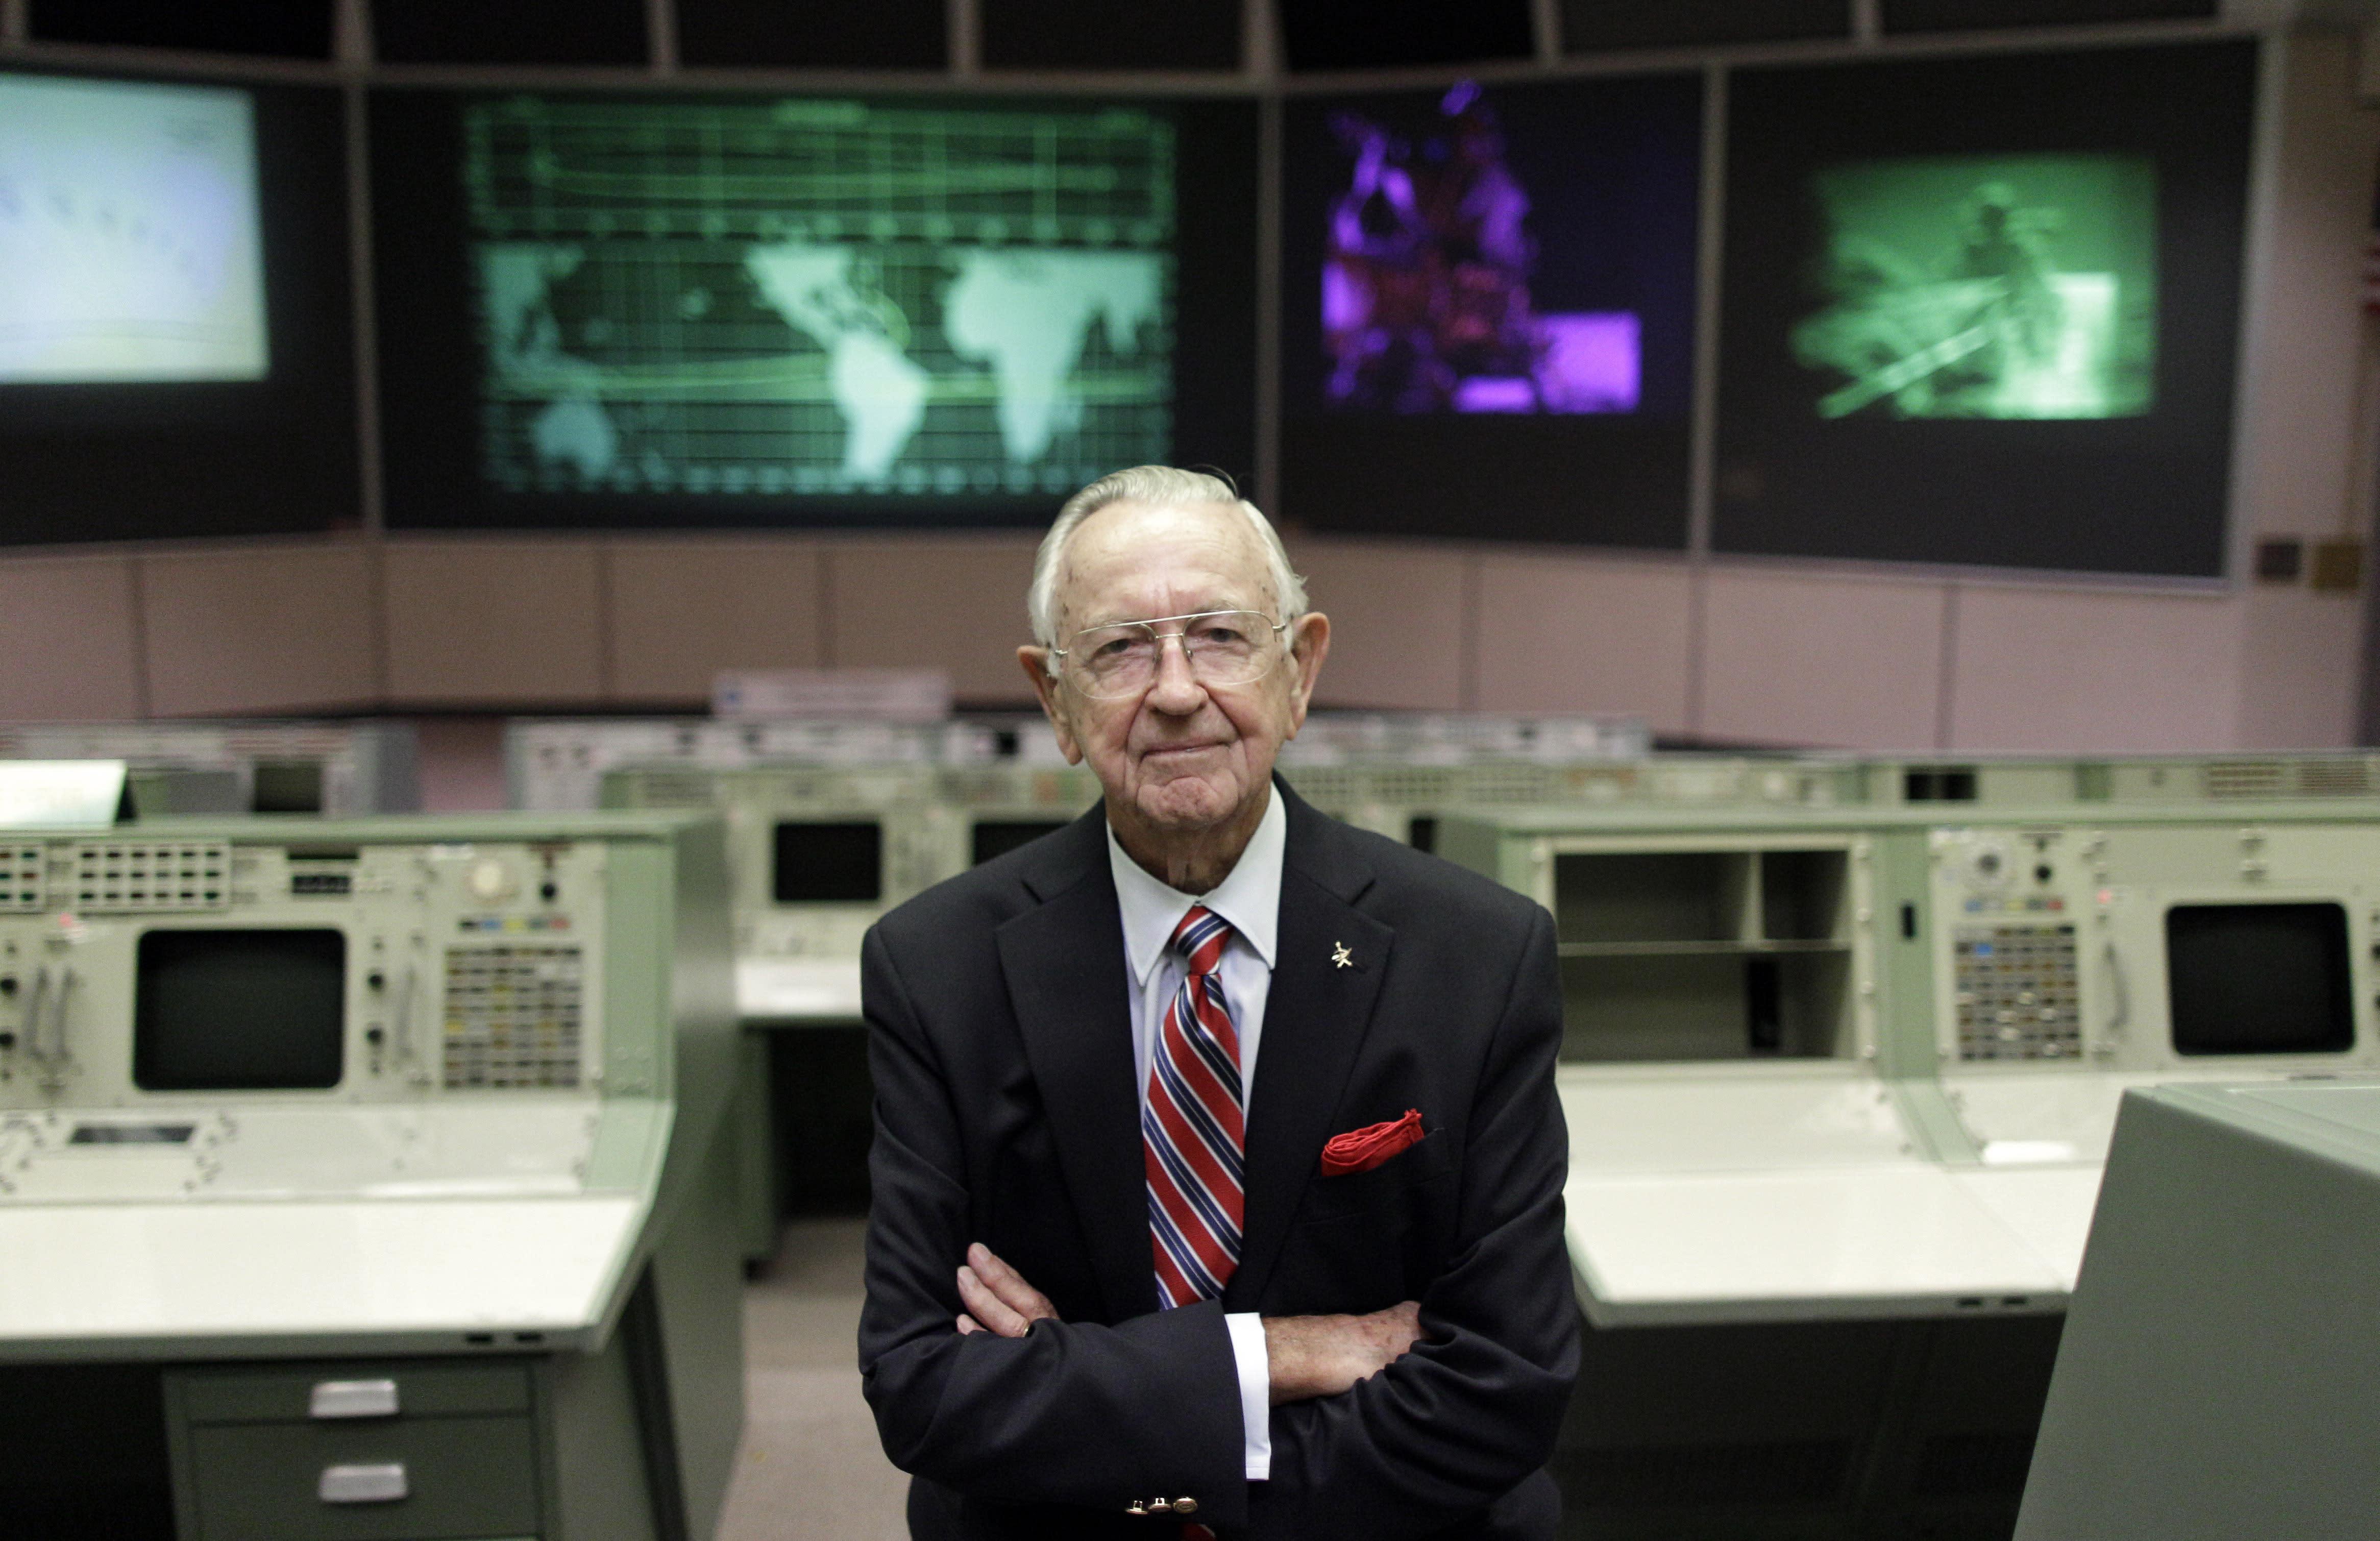 Chris Kraft, Previous and first NASA flight director, dies at 95